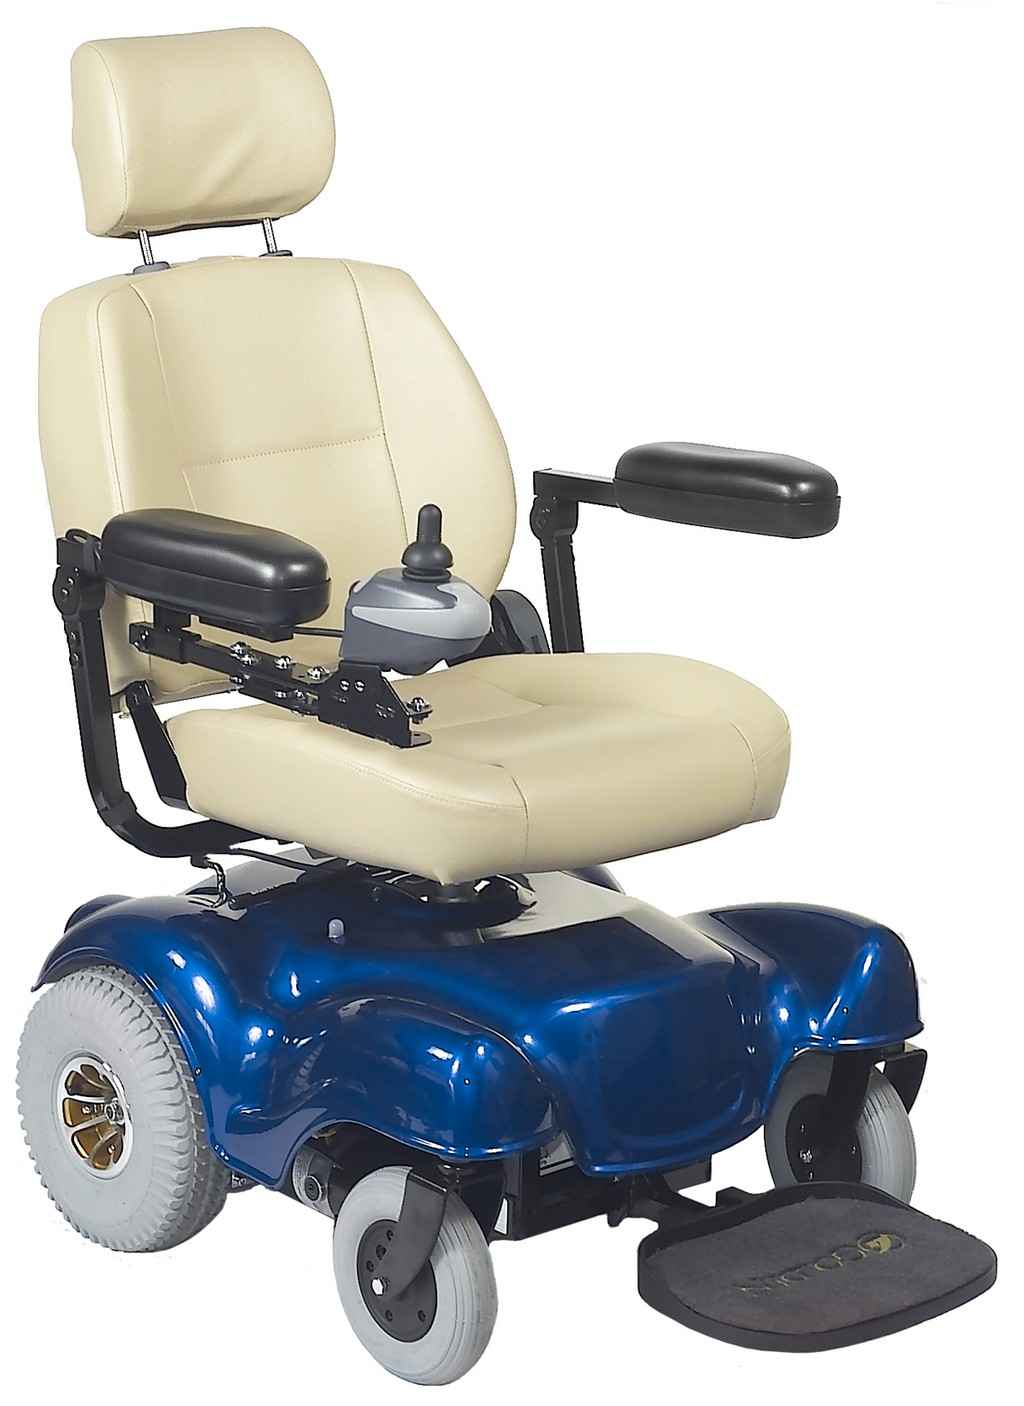 primo power wheelchair tires, power wheelchairs in fla, power wheel chair covers, head controled power wheelchair